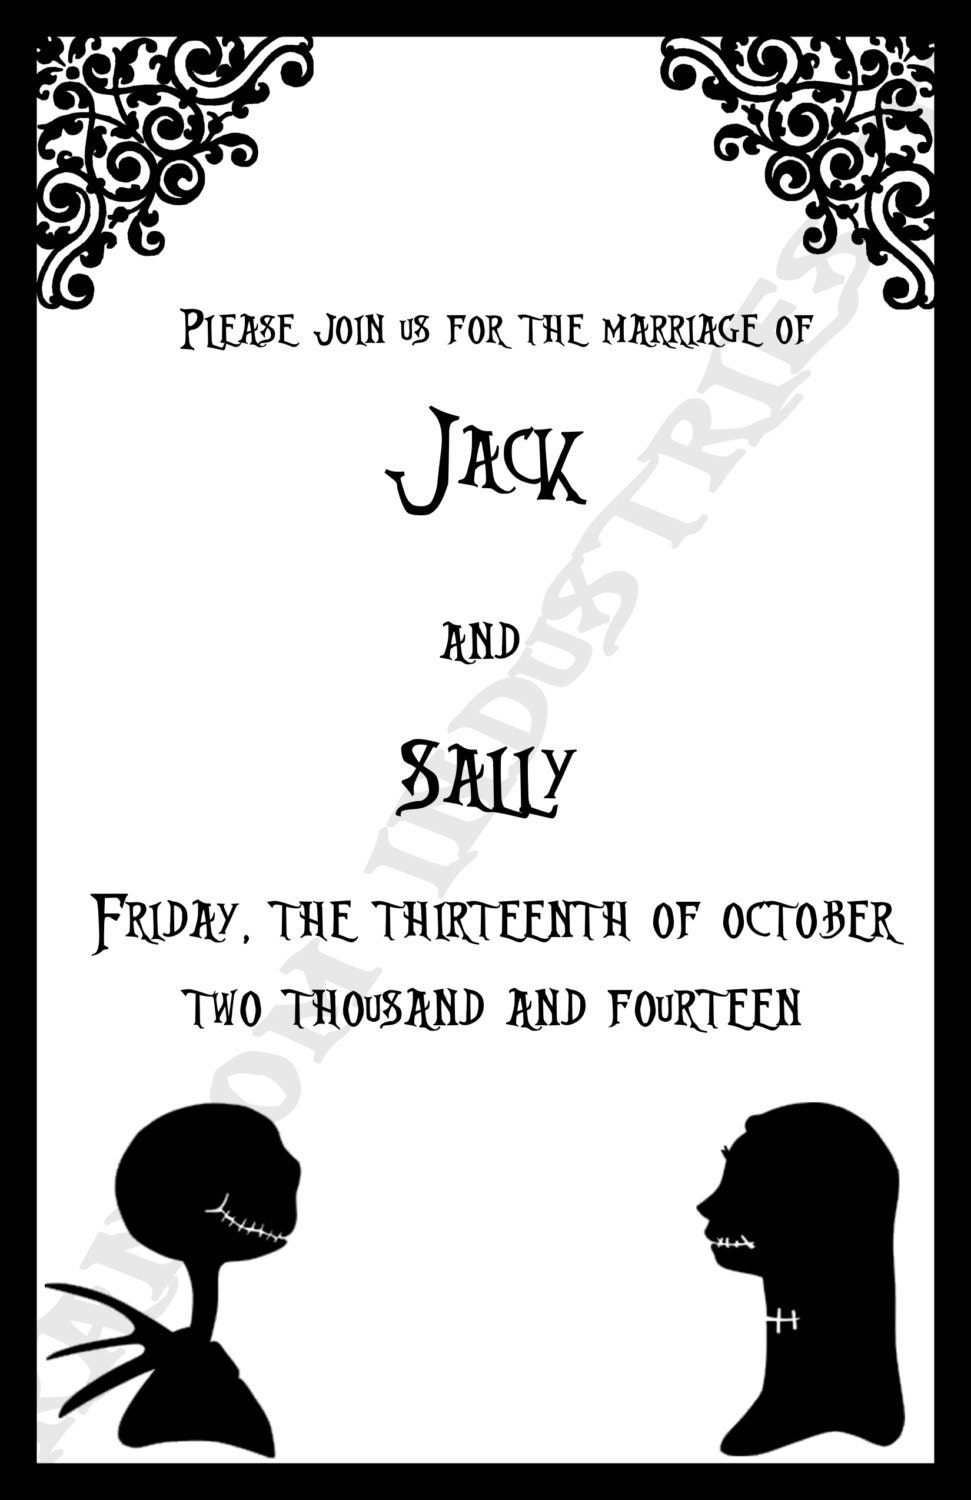 Nightmare Before Christmas Wedding Invitations was very inspiring ideas you may choose for invitation ideas